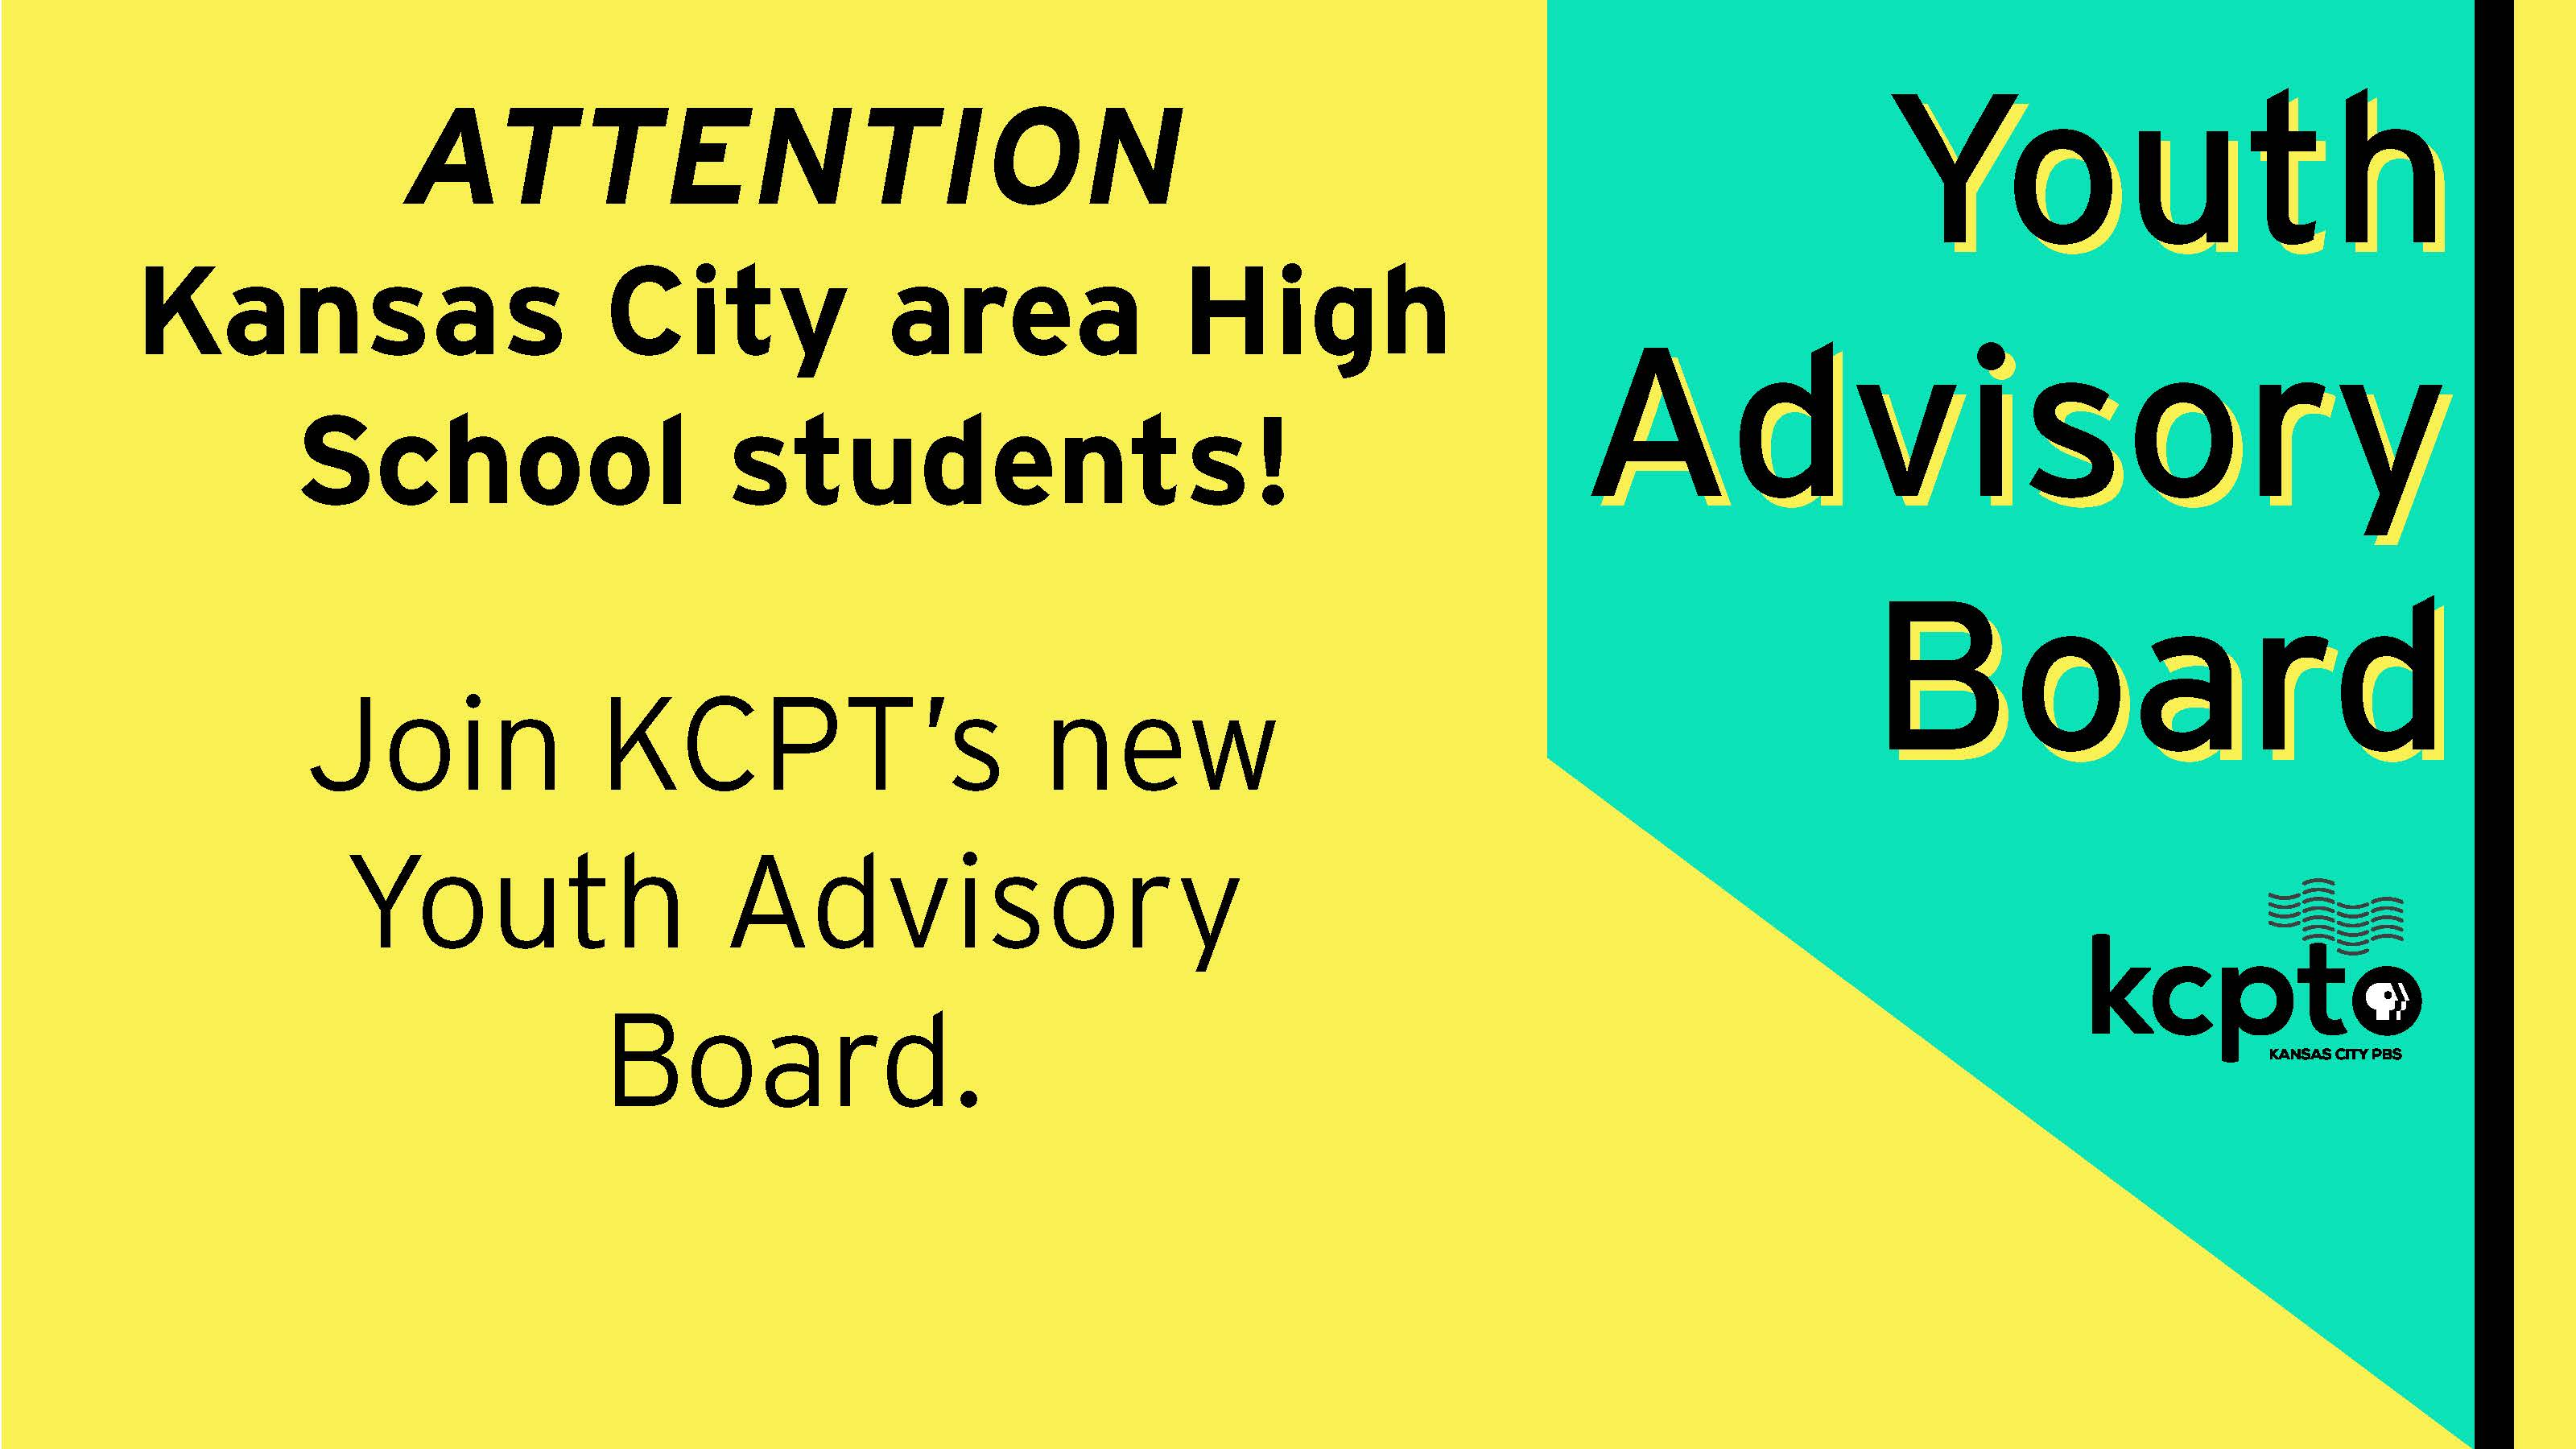 Join KCPT's Youth Advisory Board